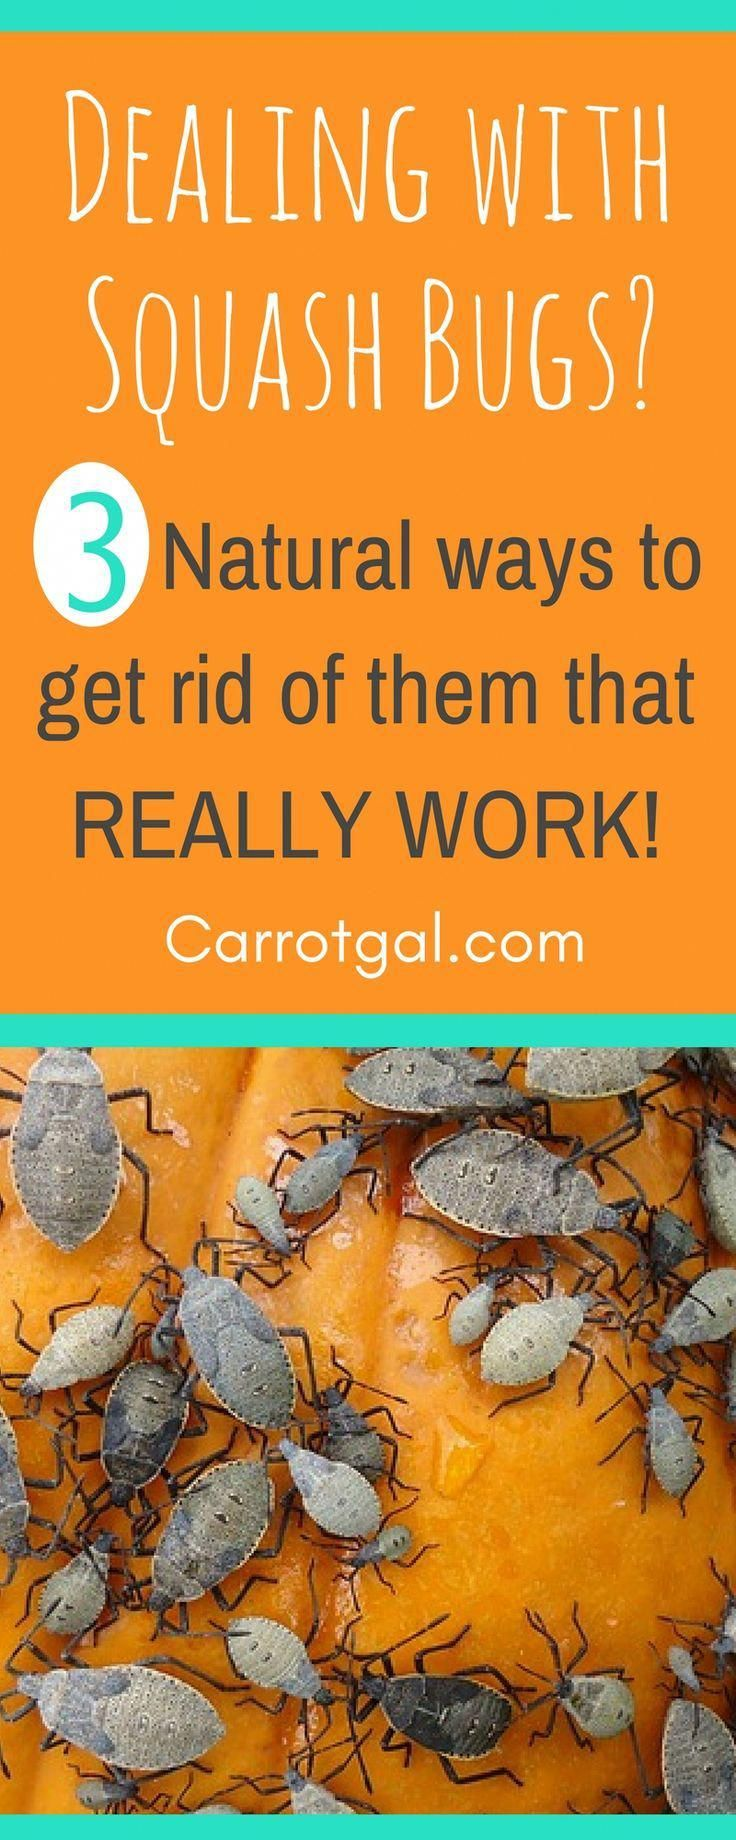 Dealing with squash bugs here are 3 natural ways to get